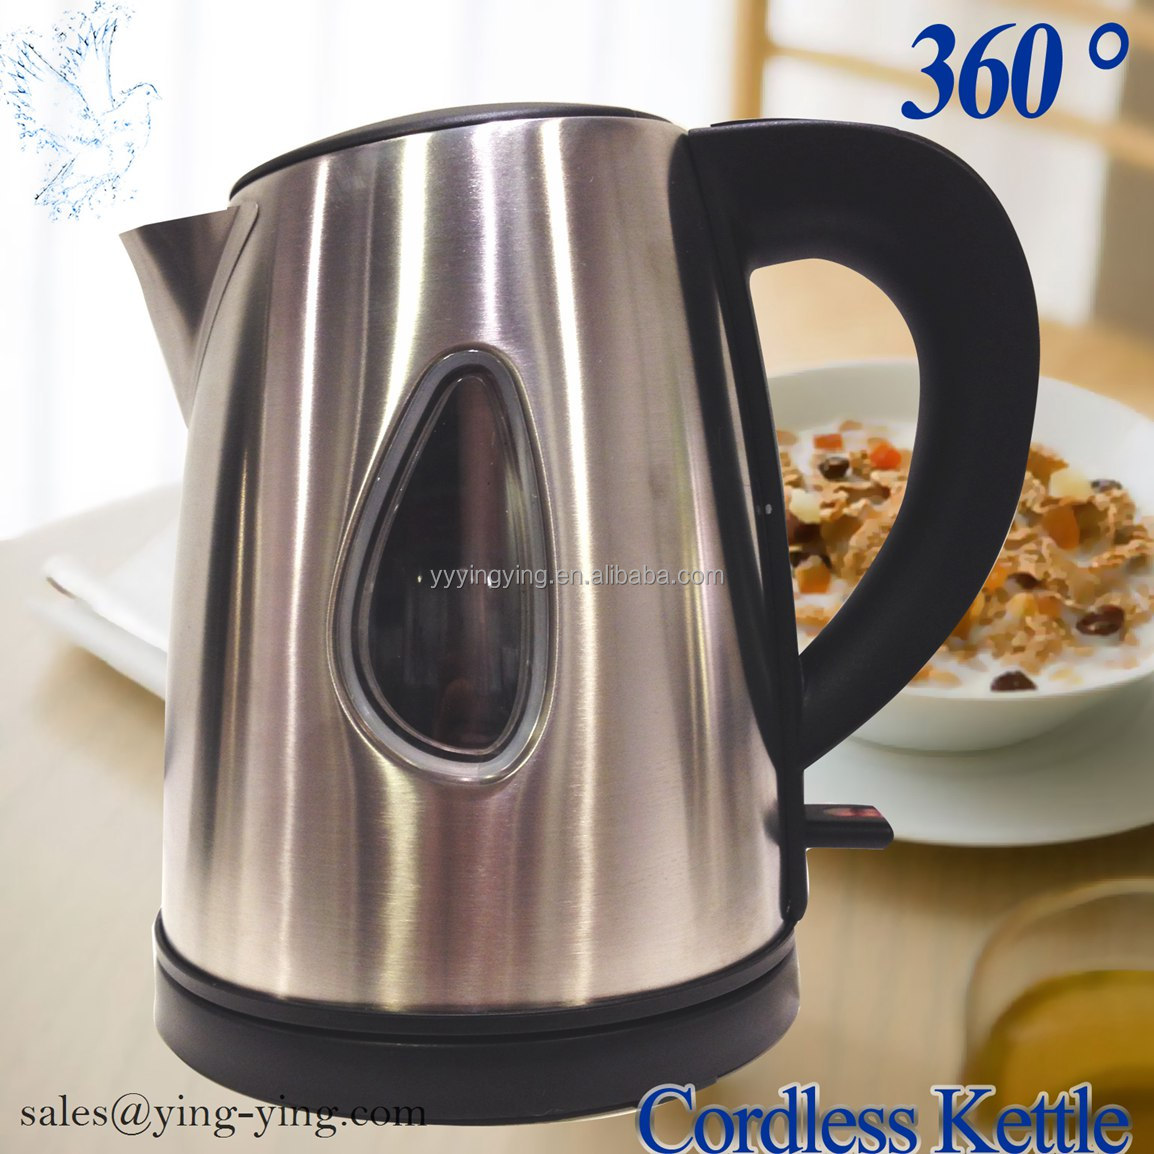 Stainless Steel Electric Kettle 1 L Best quality -NEW